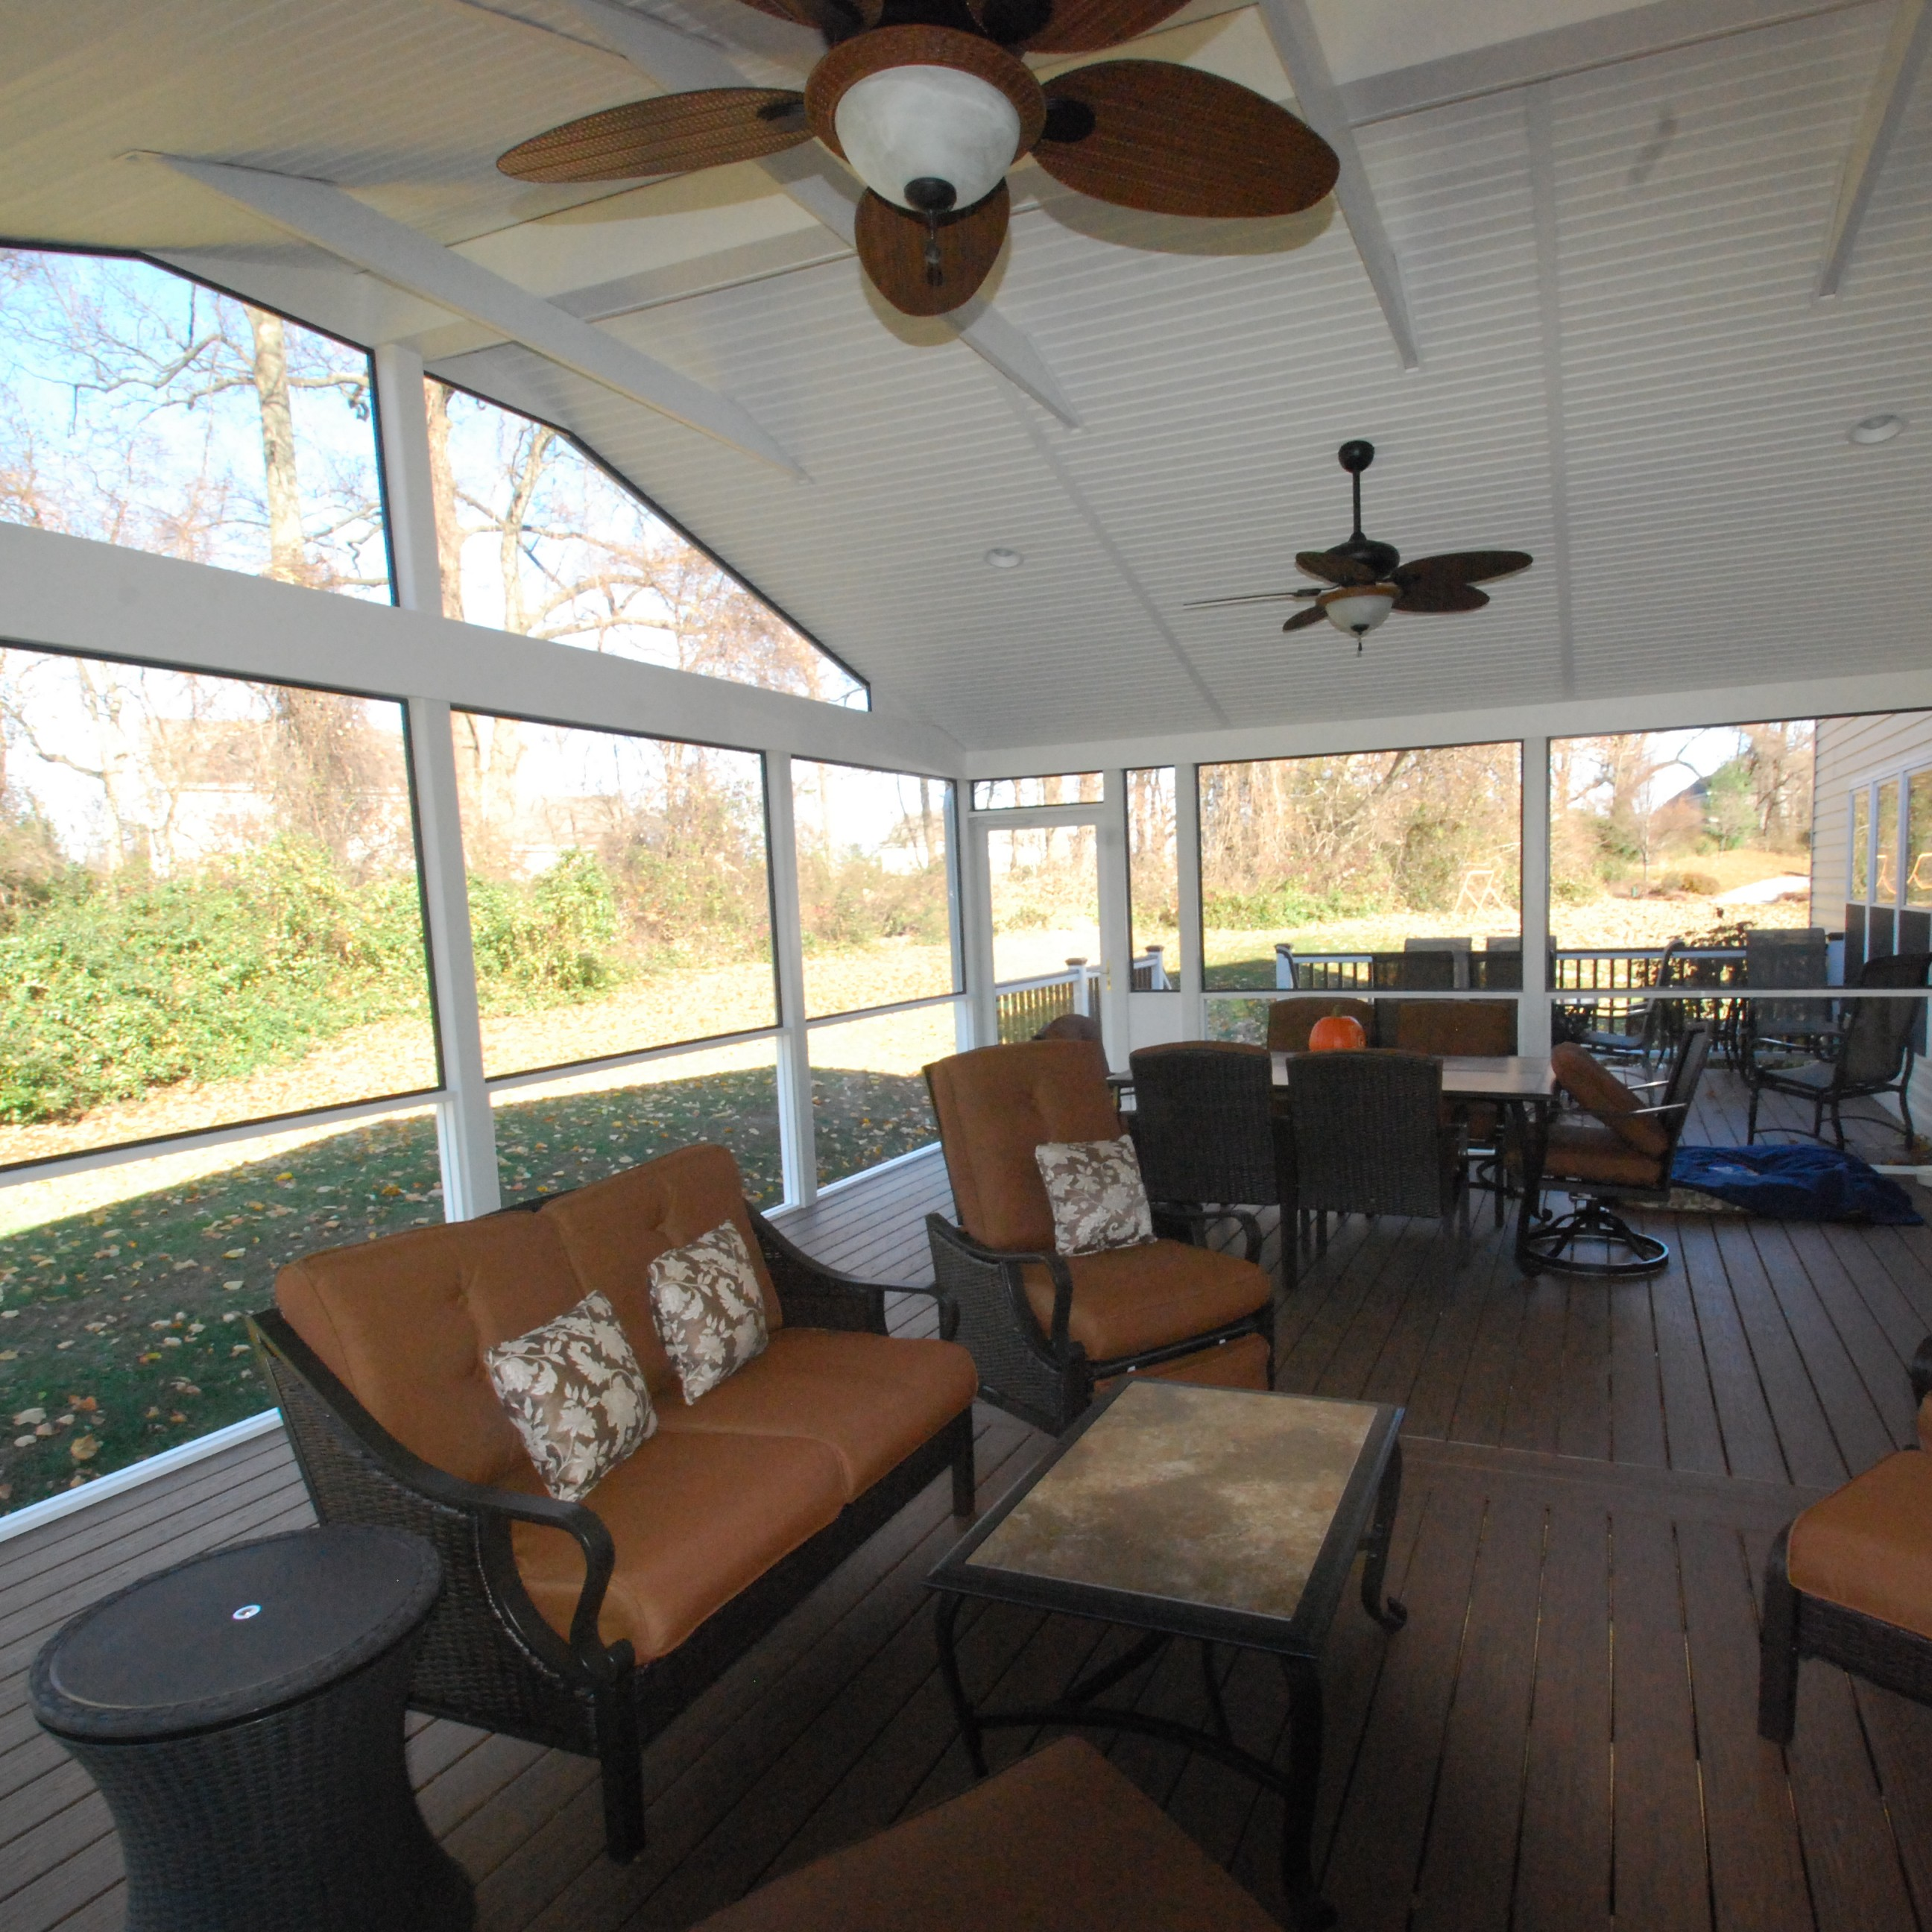 Home maintenance concepts llc in downingtown pa 19335 for Concept homes llc